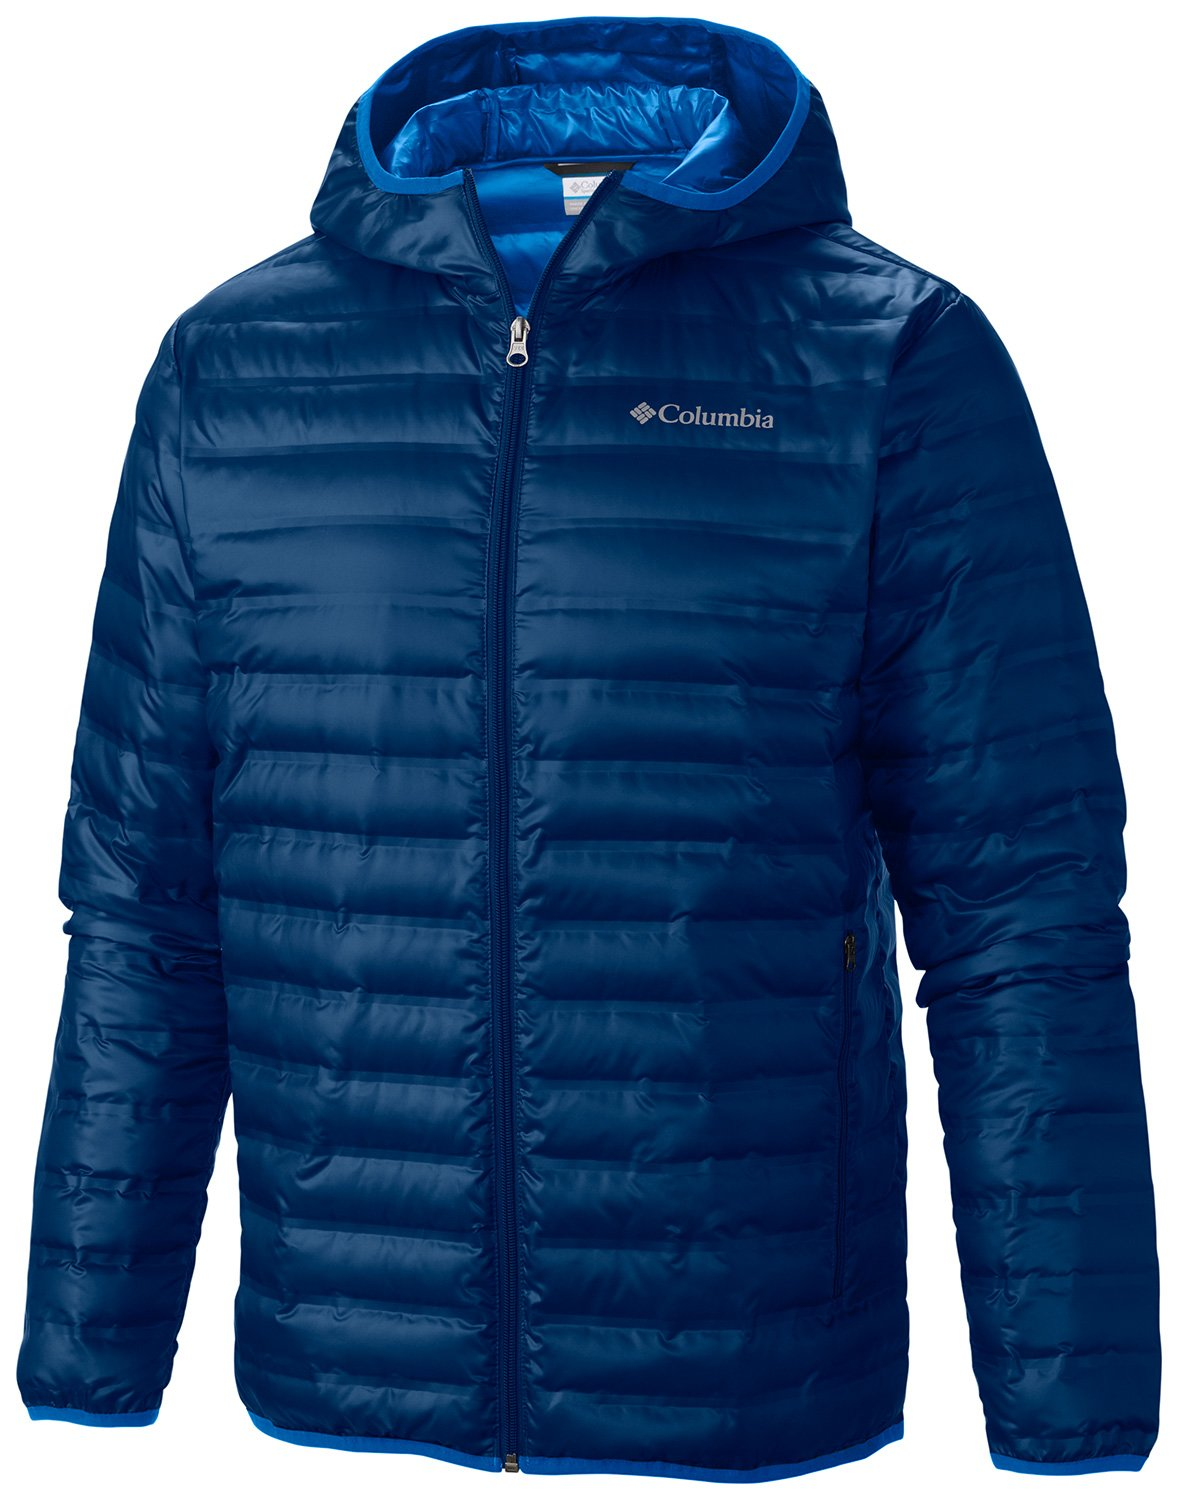 Columbia Men's Flash Forward Down Hooded Jacket Columbia (Sporting Goods)